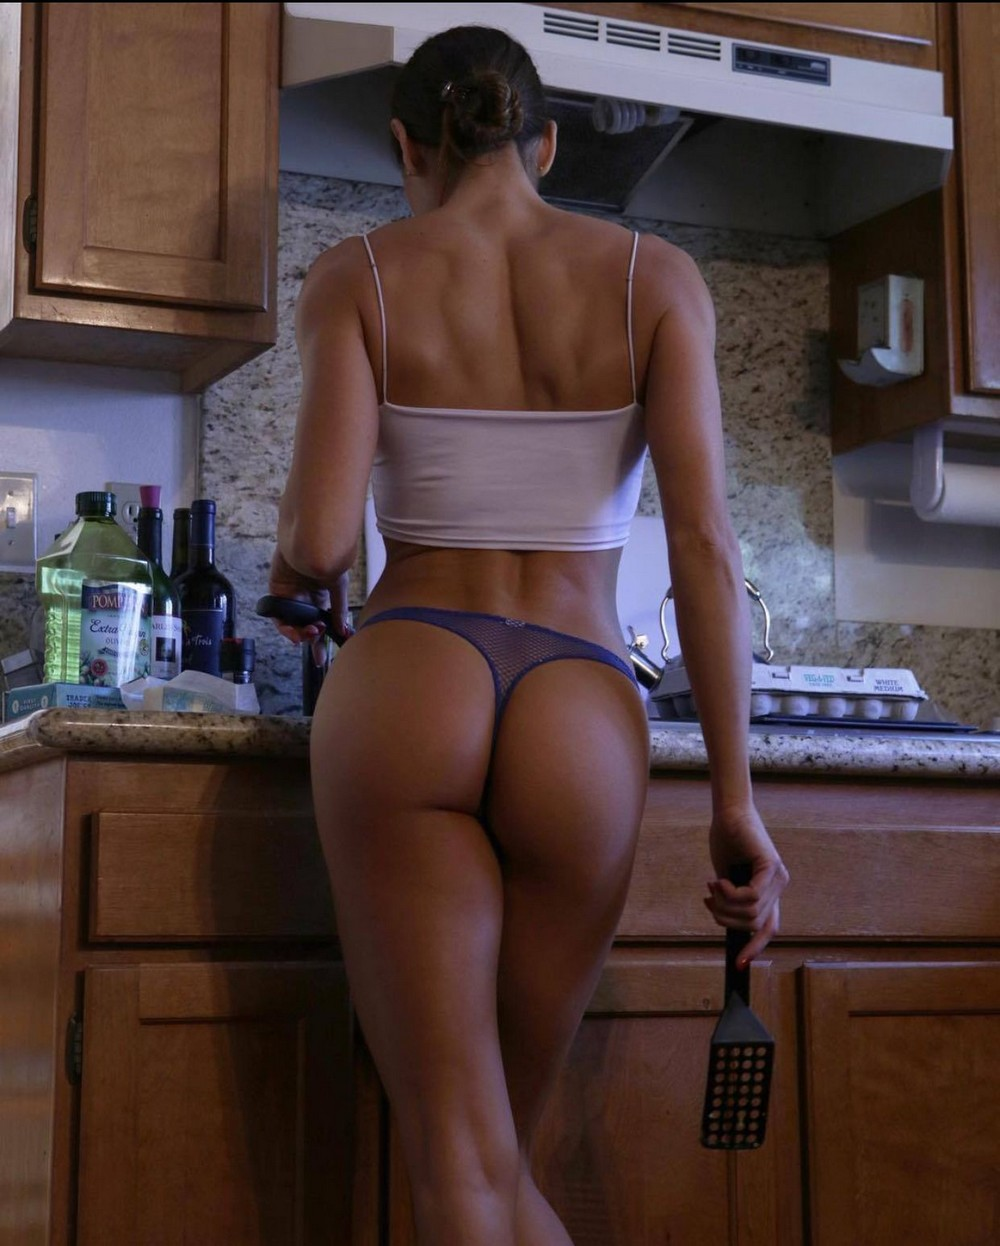 Hot Girls With Sexy Butts (60 Photos + 5 GIFs)